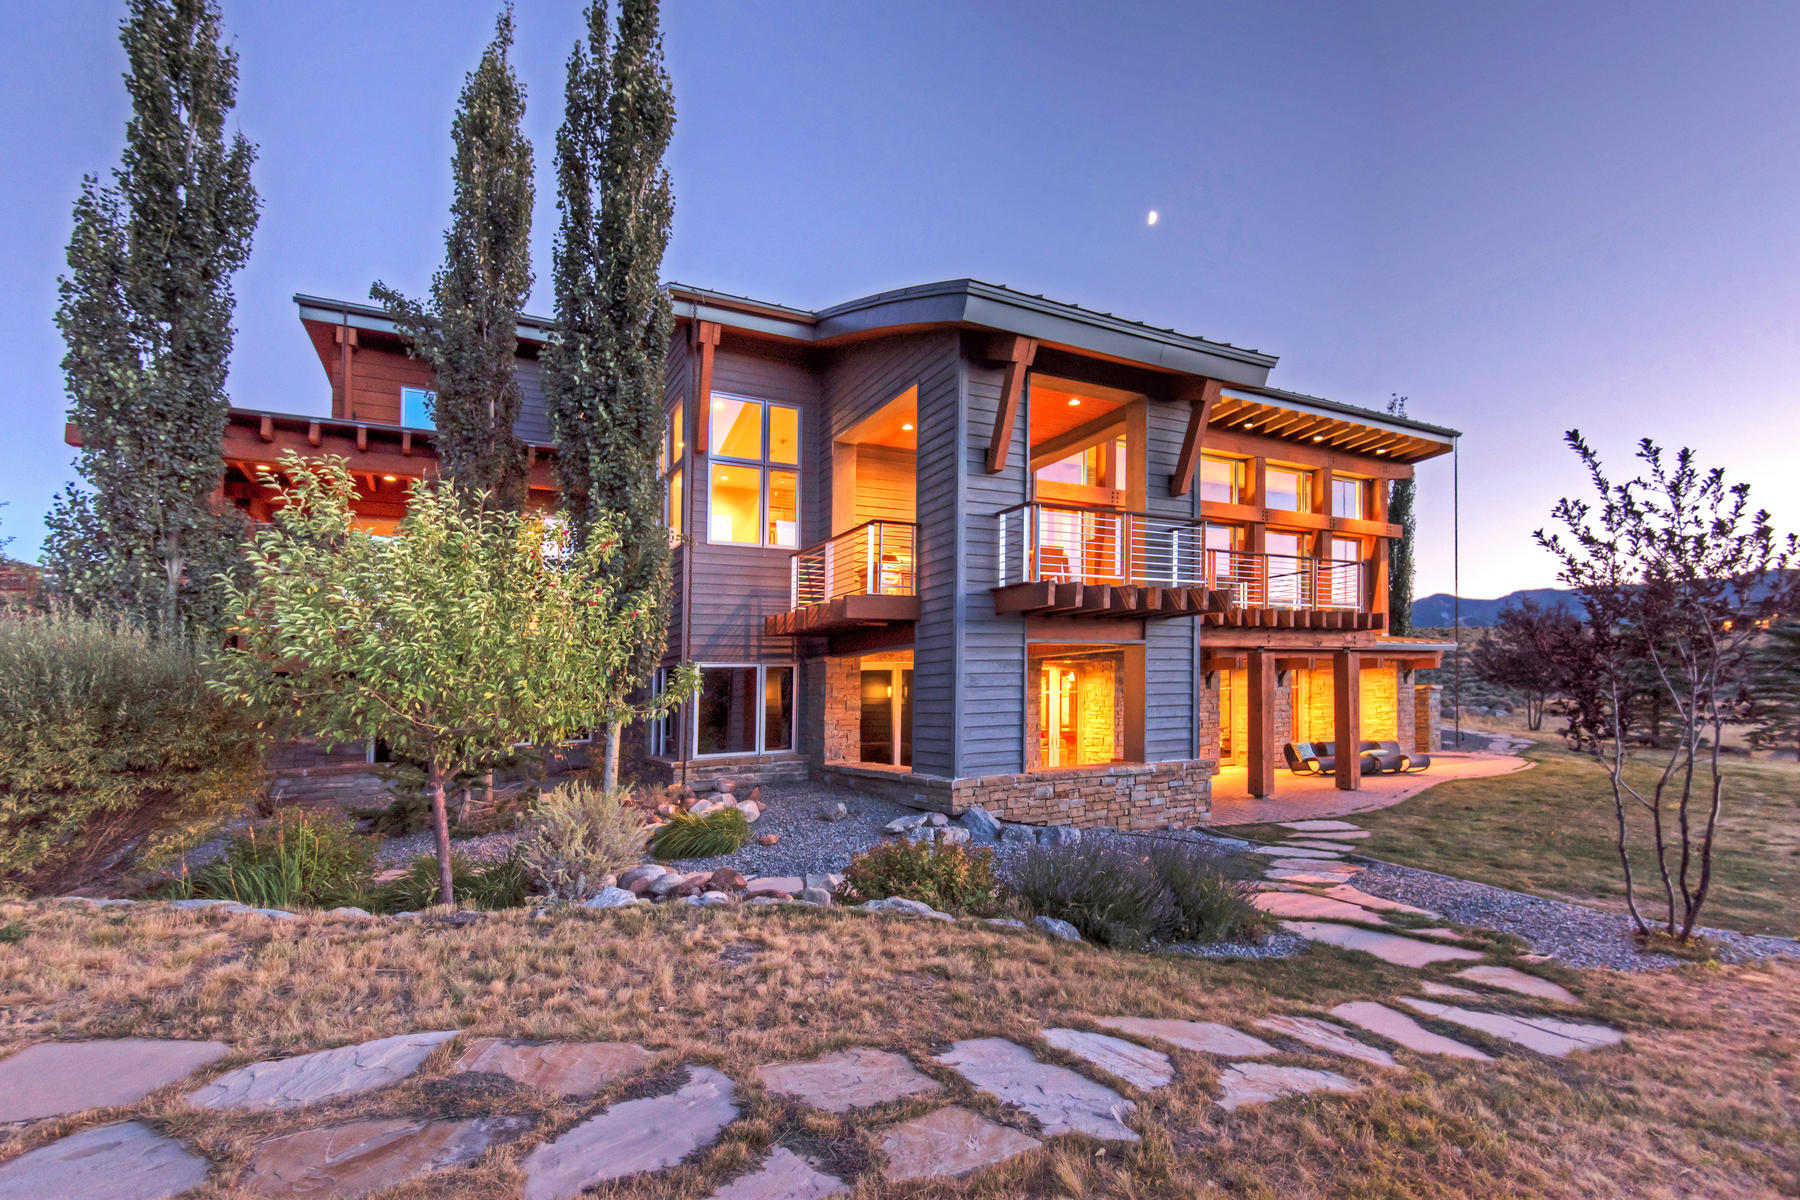 Single Family Home for Sale at Contemporary Glenwild Dream Home 575 Mountain Holly Rd Park City, Utah, 84098 United States